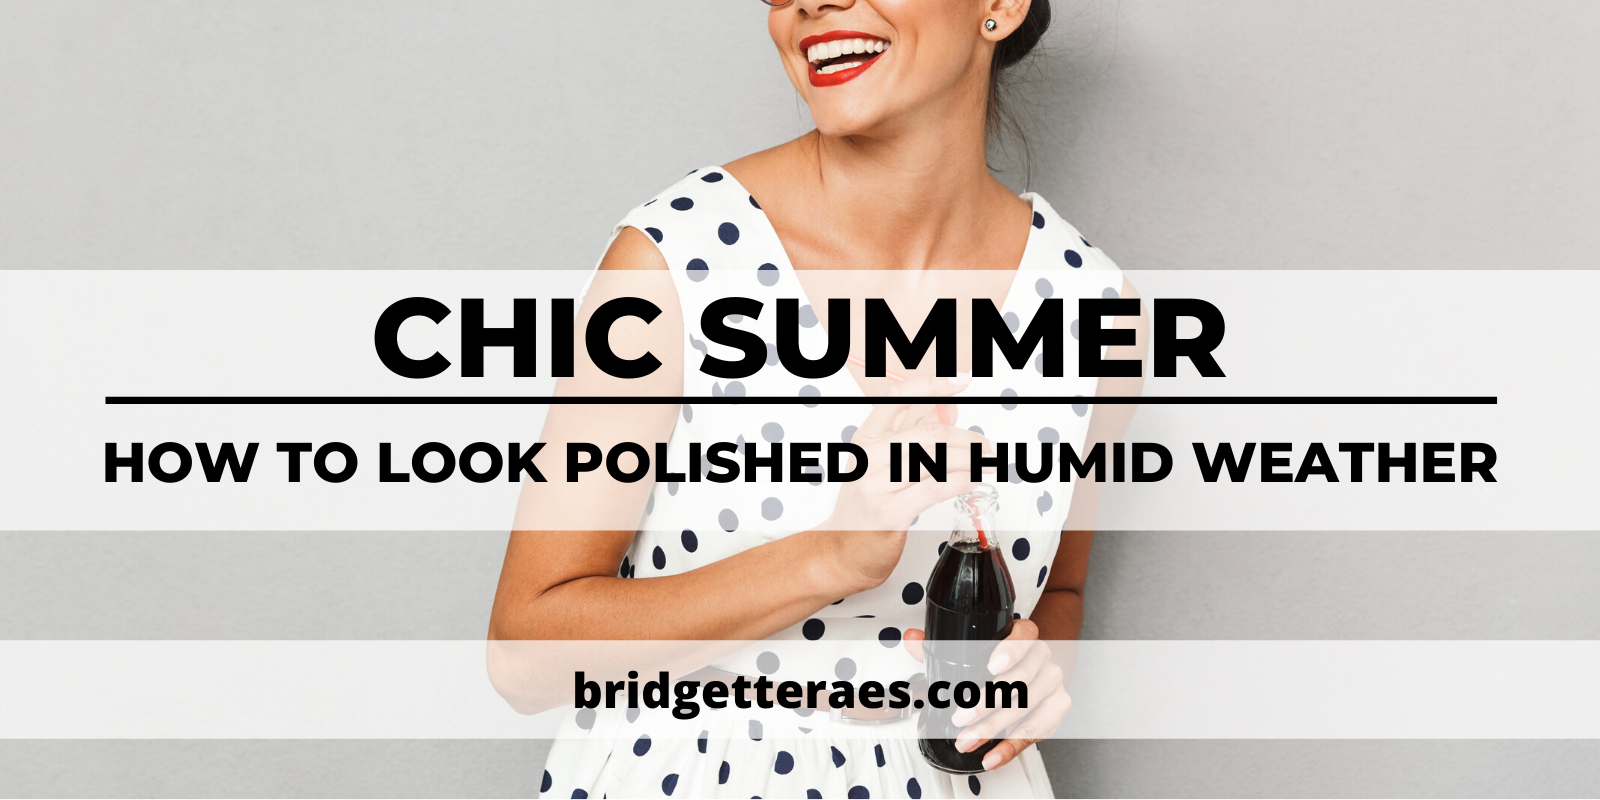 Chic Summer: How to Look Polished in Humid Weather